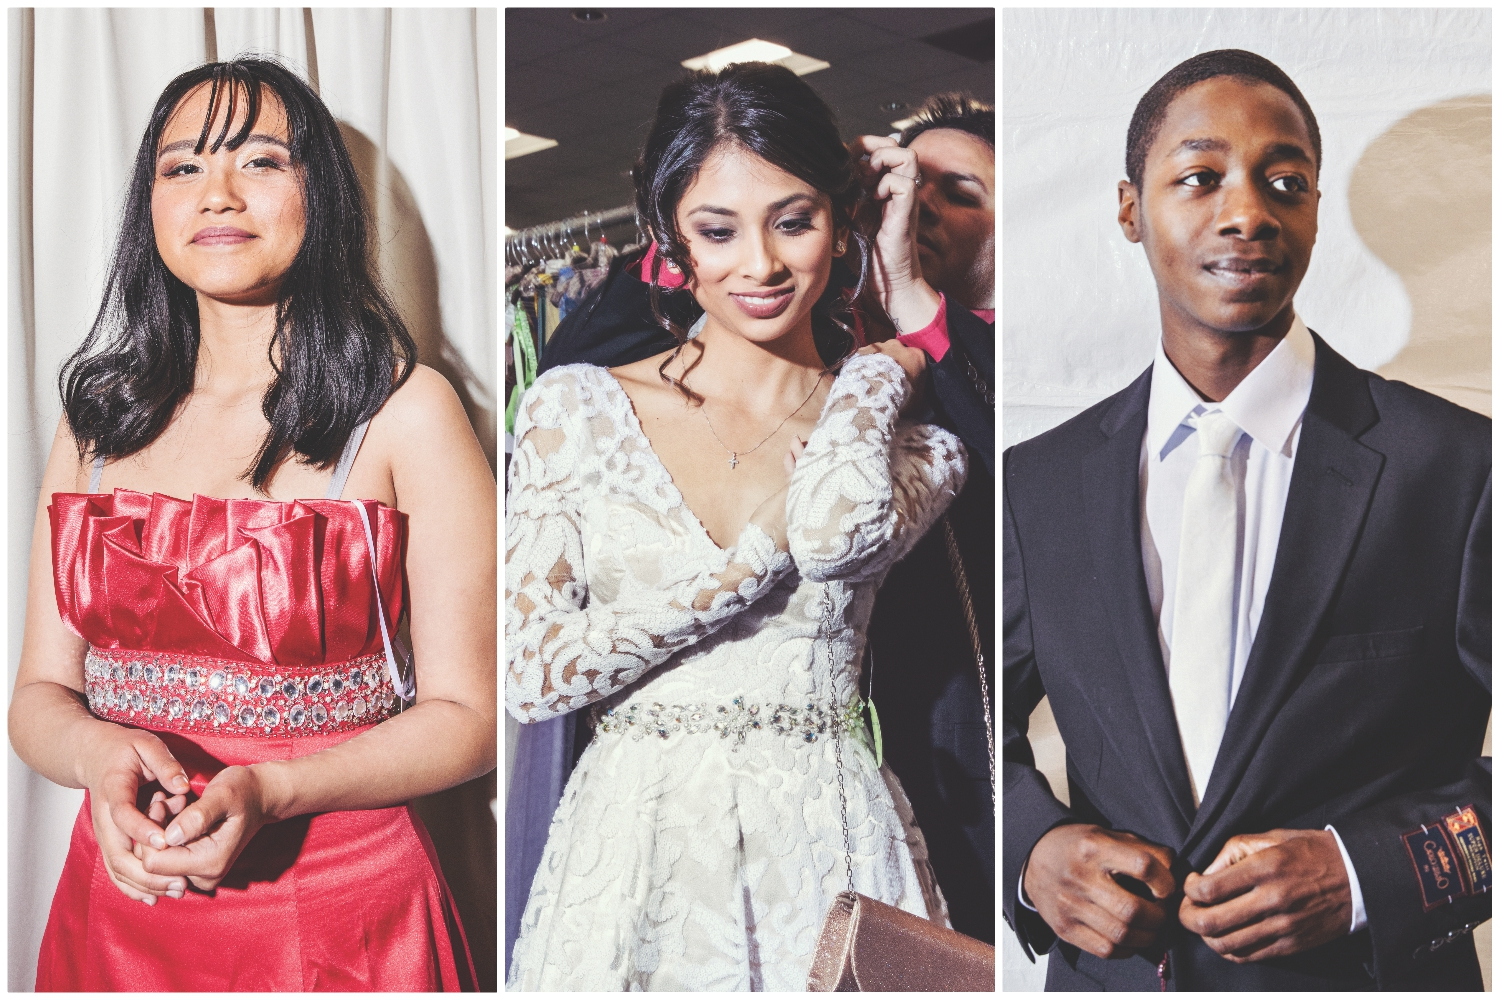 foster prom glamour gowns suit up